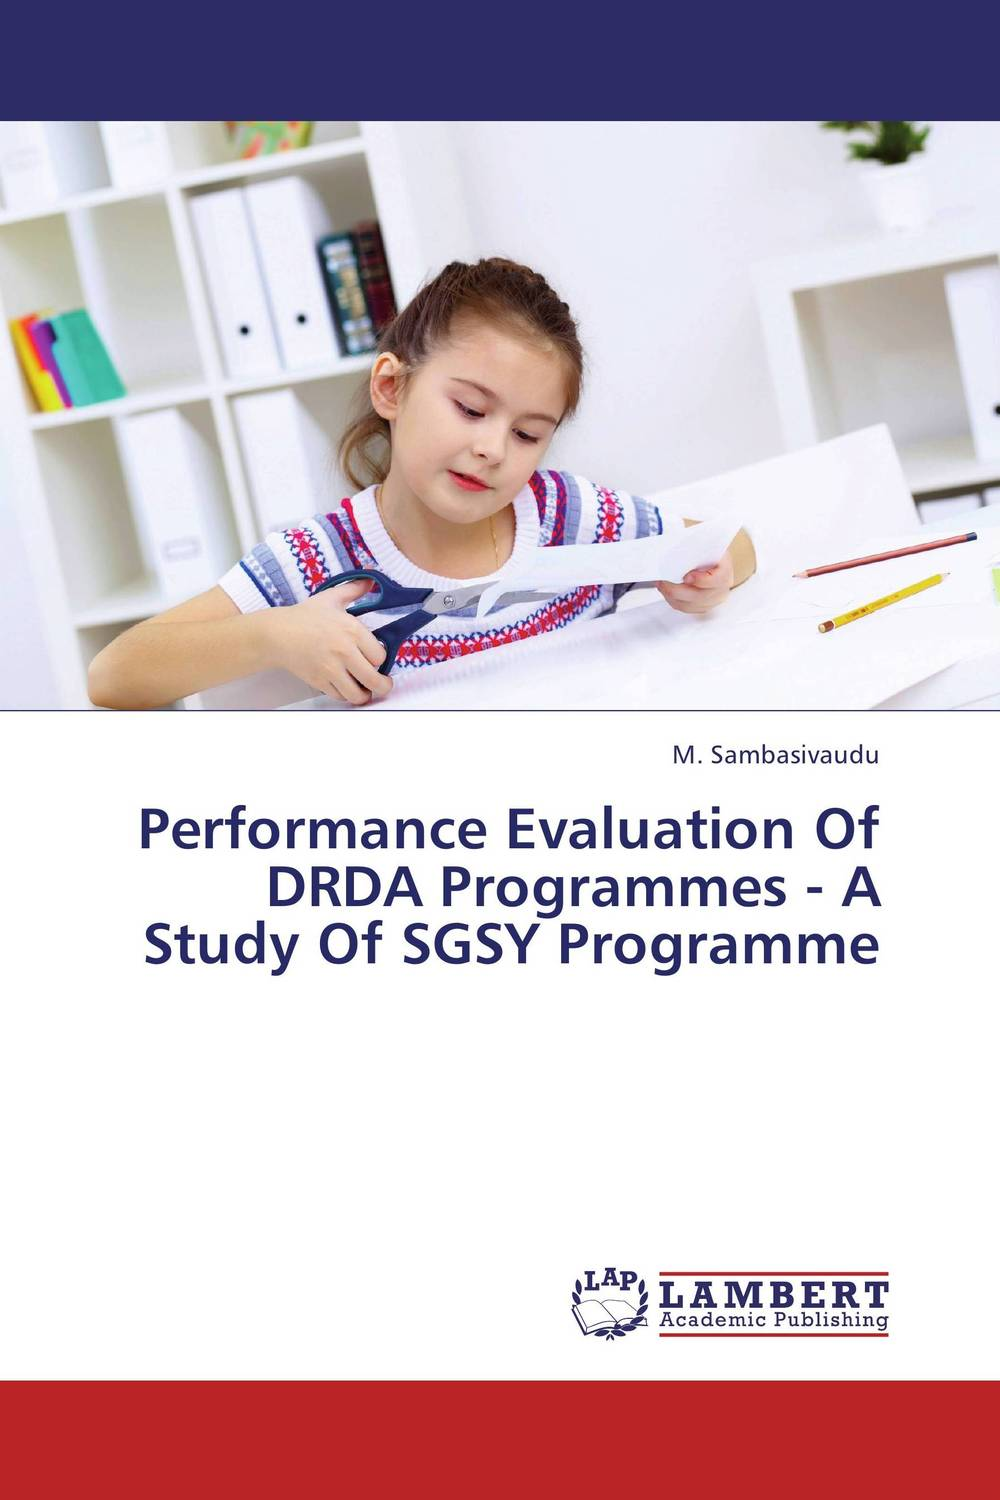 Performance Evaluation Of DRDA Programmes - A Study Of SGSY Programme poverty and development in rural india